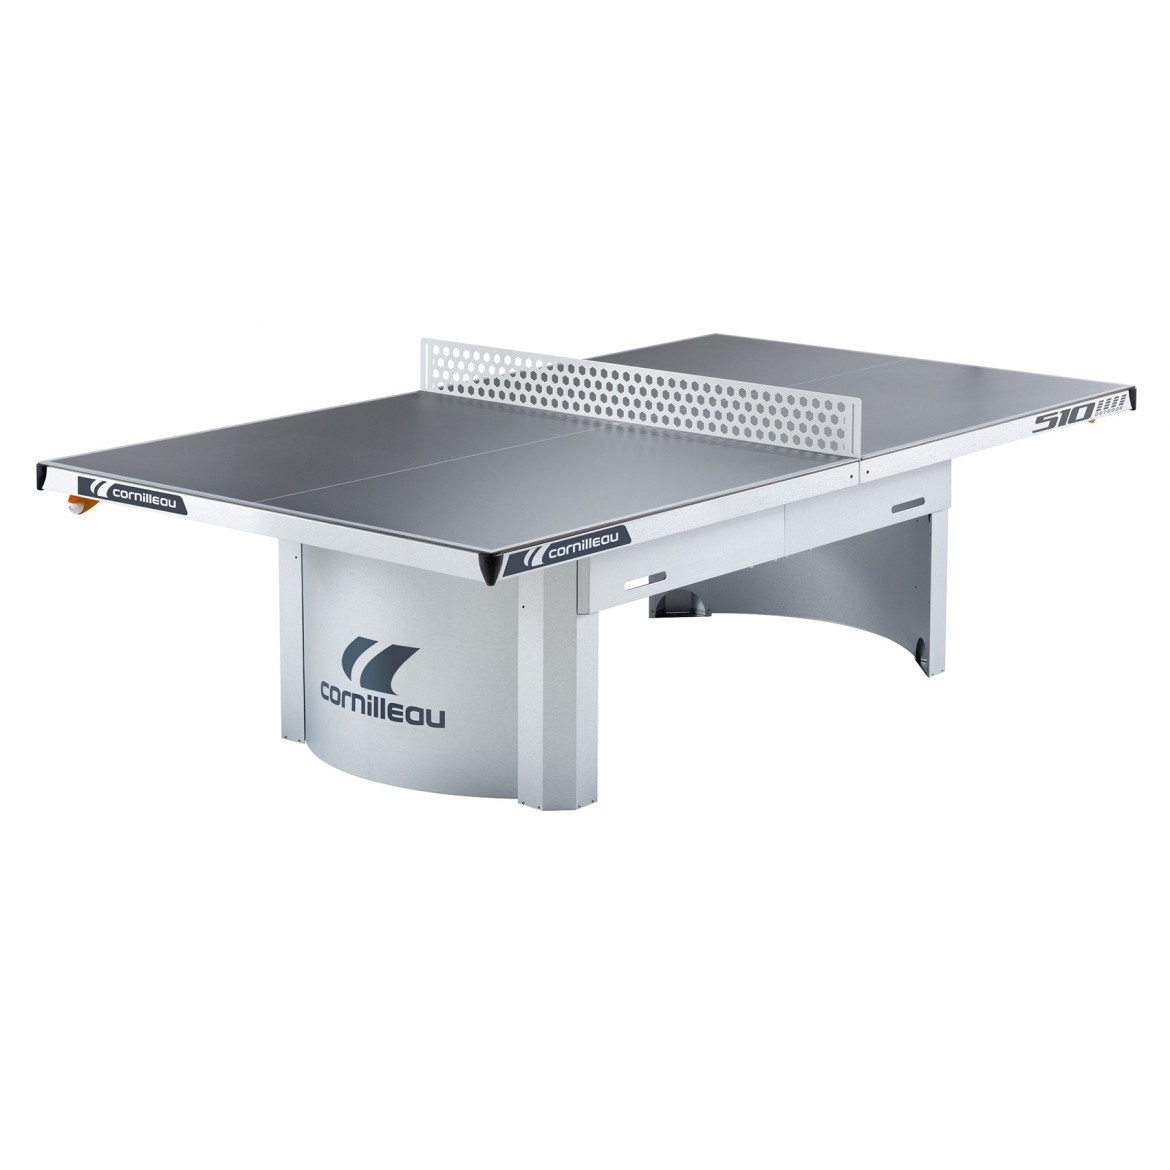 Table tennis table PRO 510M OUTDOOR - Cornilleau